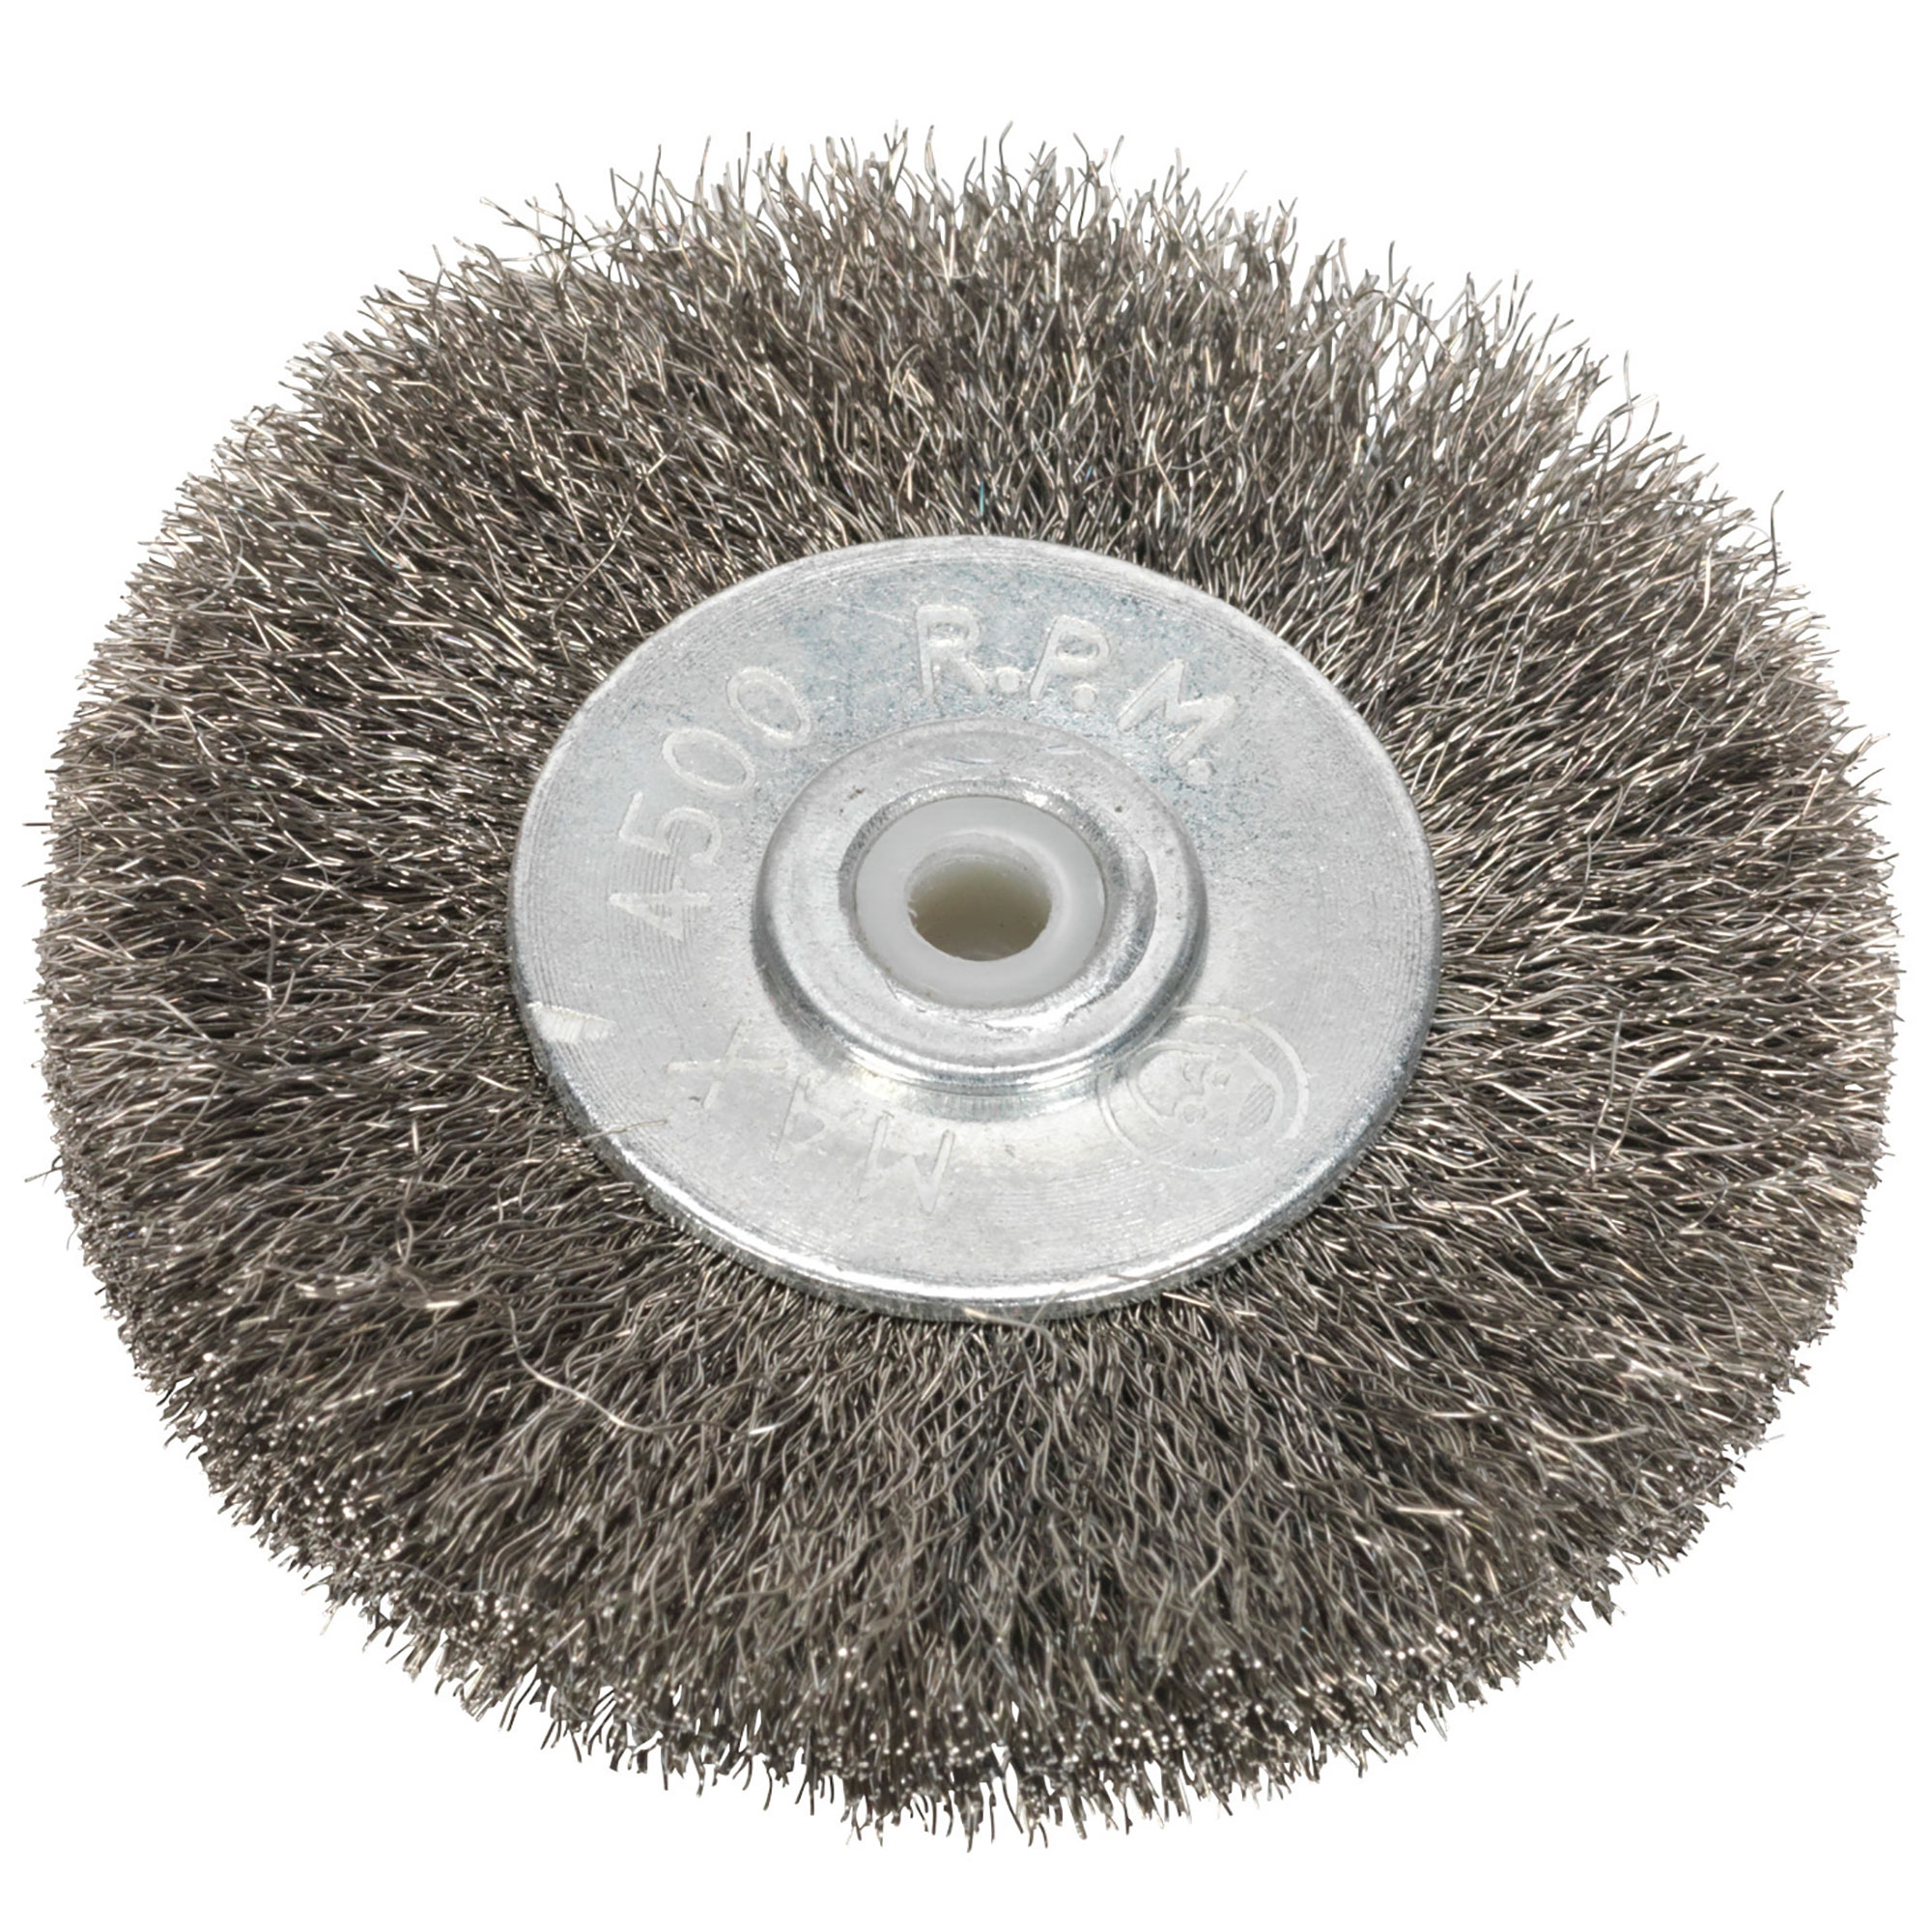 Pleasant Details About Sealey Wire Wheel For Bg1010 Mini Bench Grinder 50 X 13Mm 6Mm Bore Bg1010Ww50 Caraccident5 Cool Chair Designs And Ideas Caraccident5Info